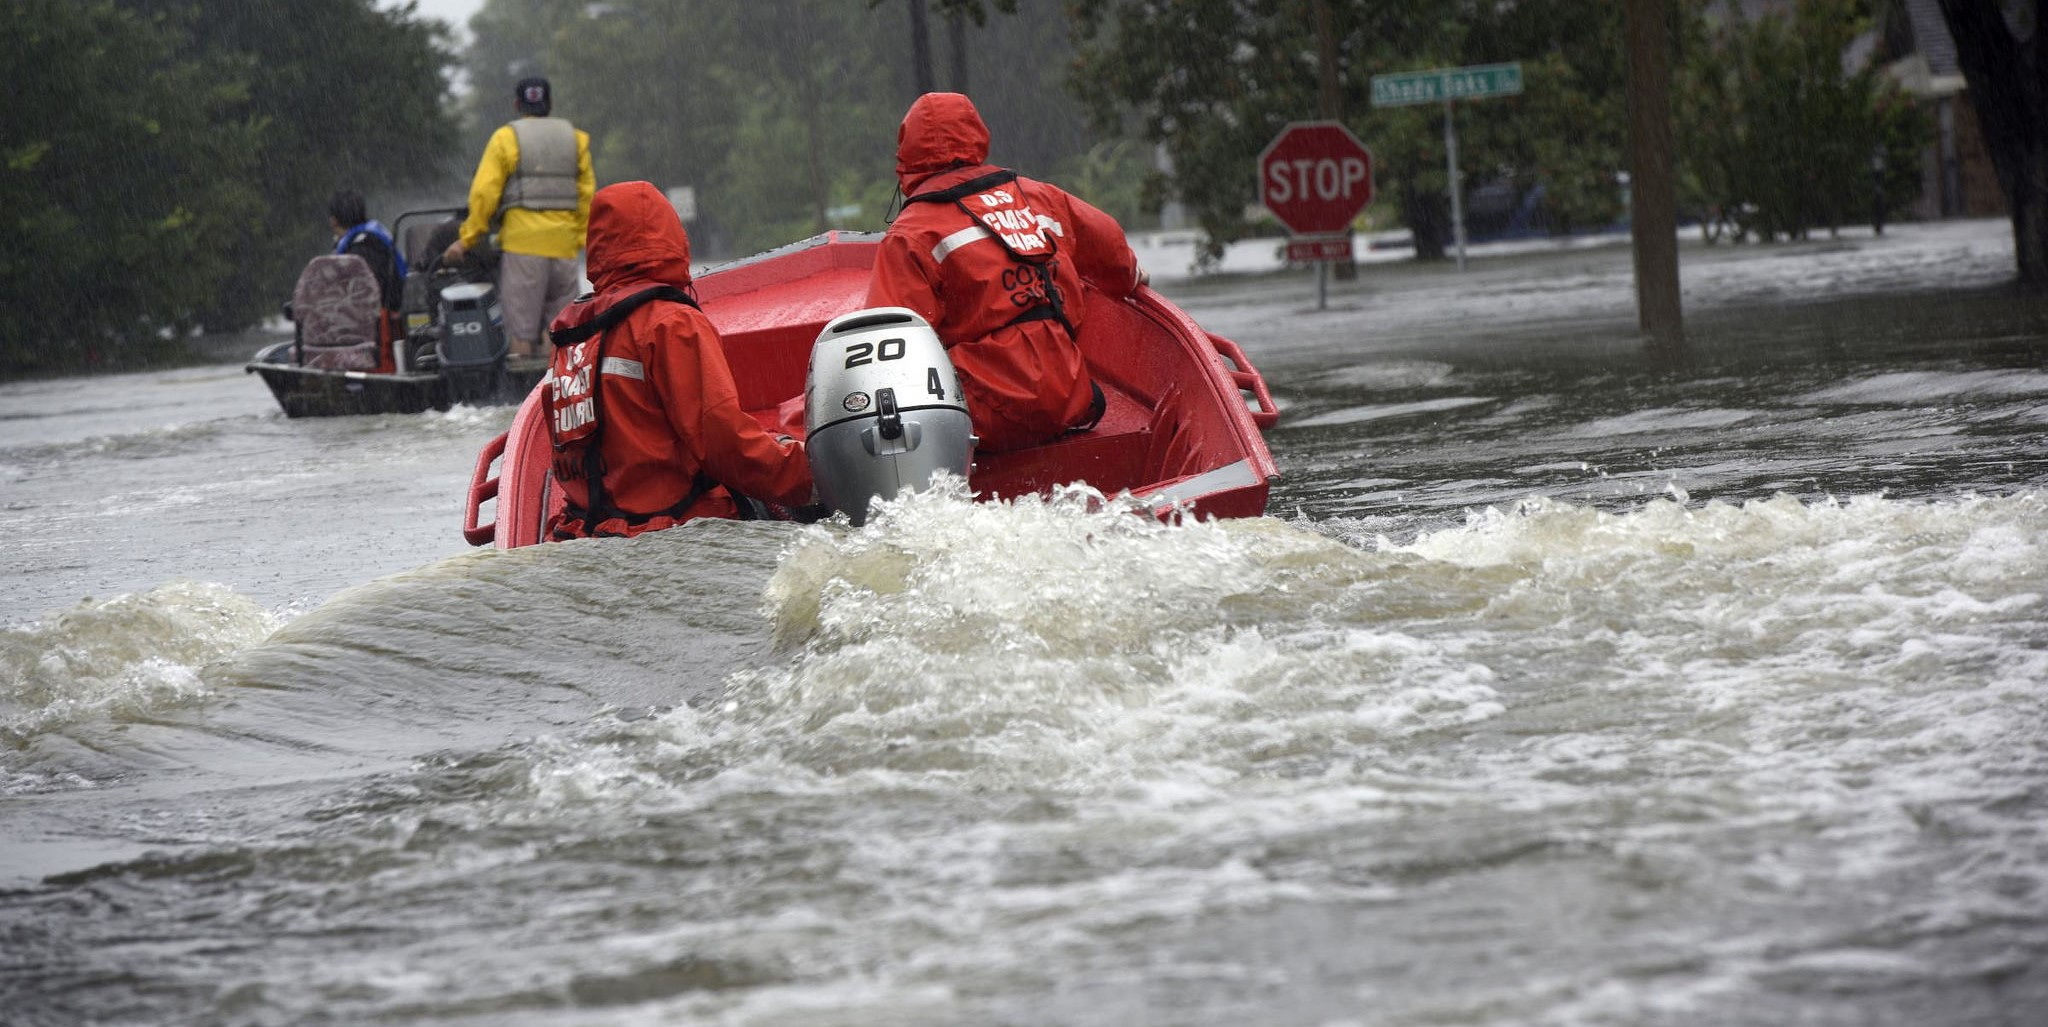 Coast Guard officers in a flood punt boat in Friendswood, Texas in the wake of Hurricane Harry (Photo:Coast Guard News/Flickr)